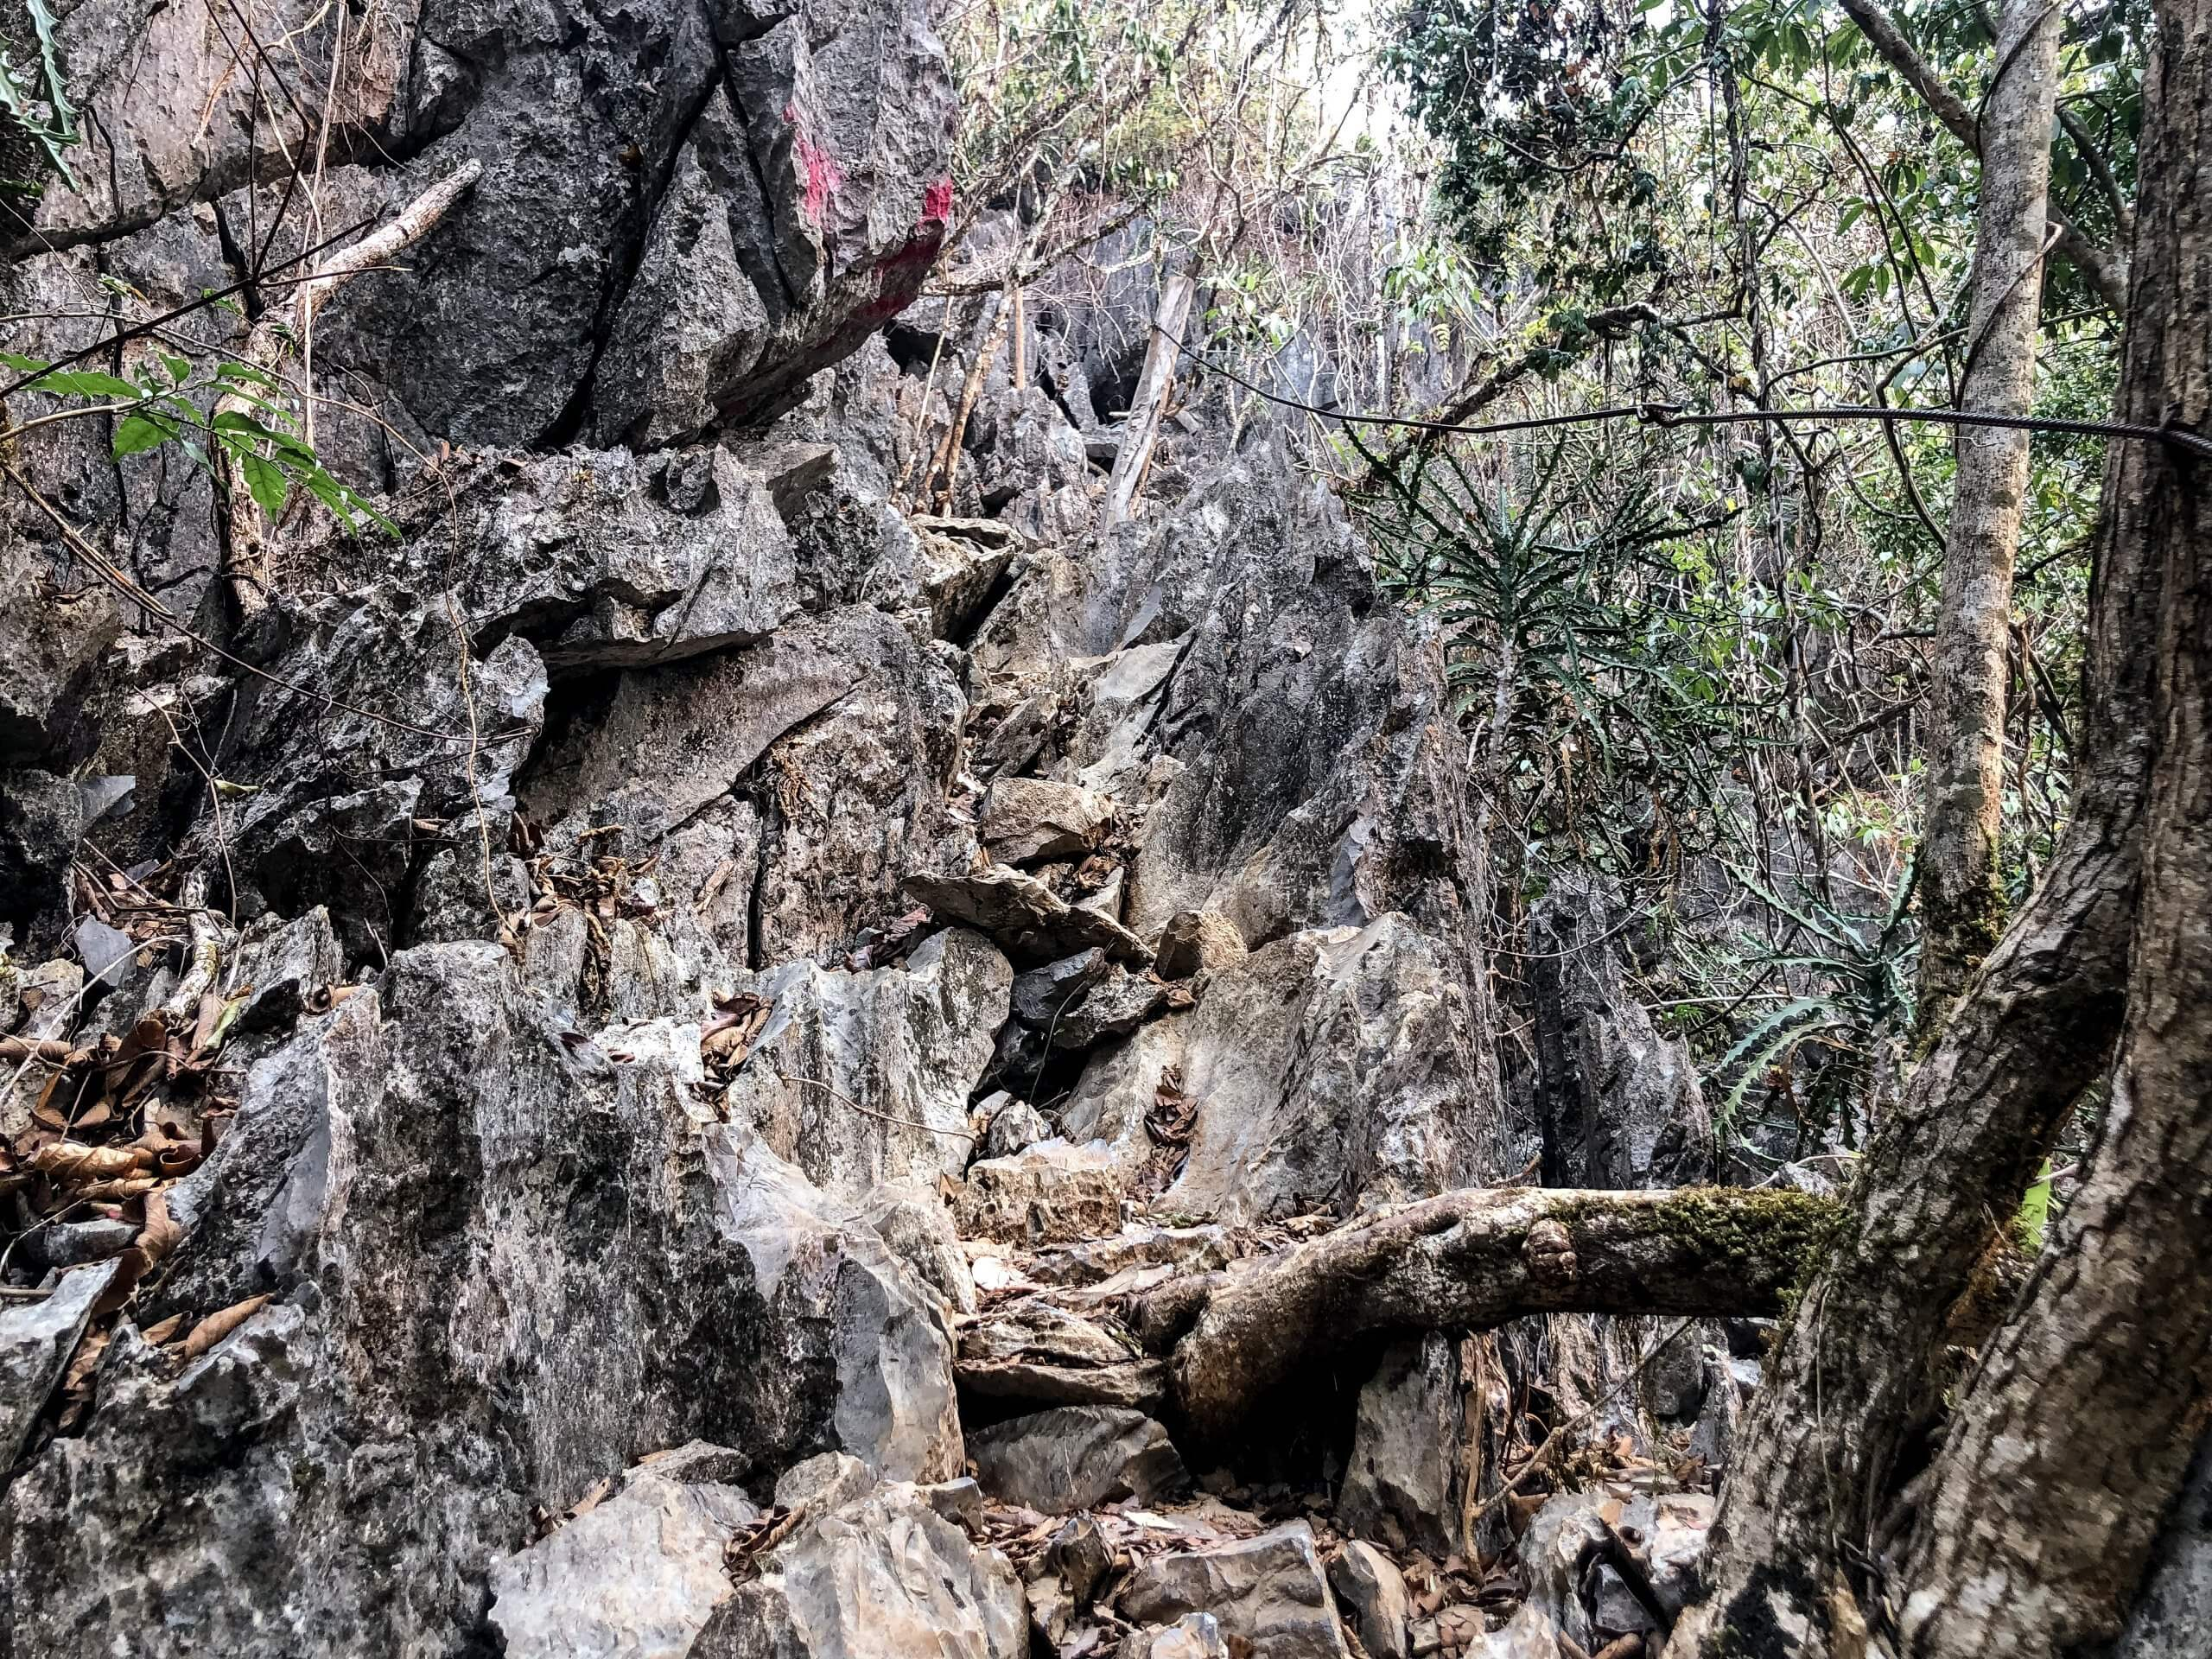 part of the trail leading to the viewpoint in Vang Vieng